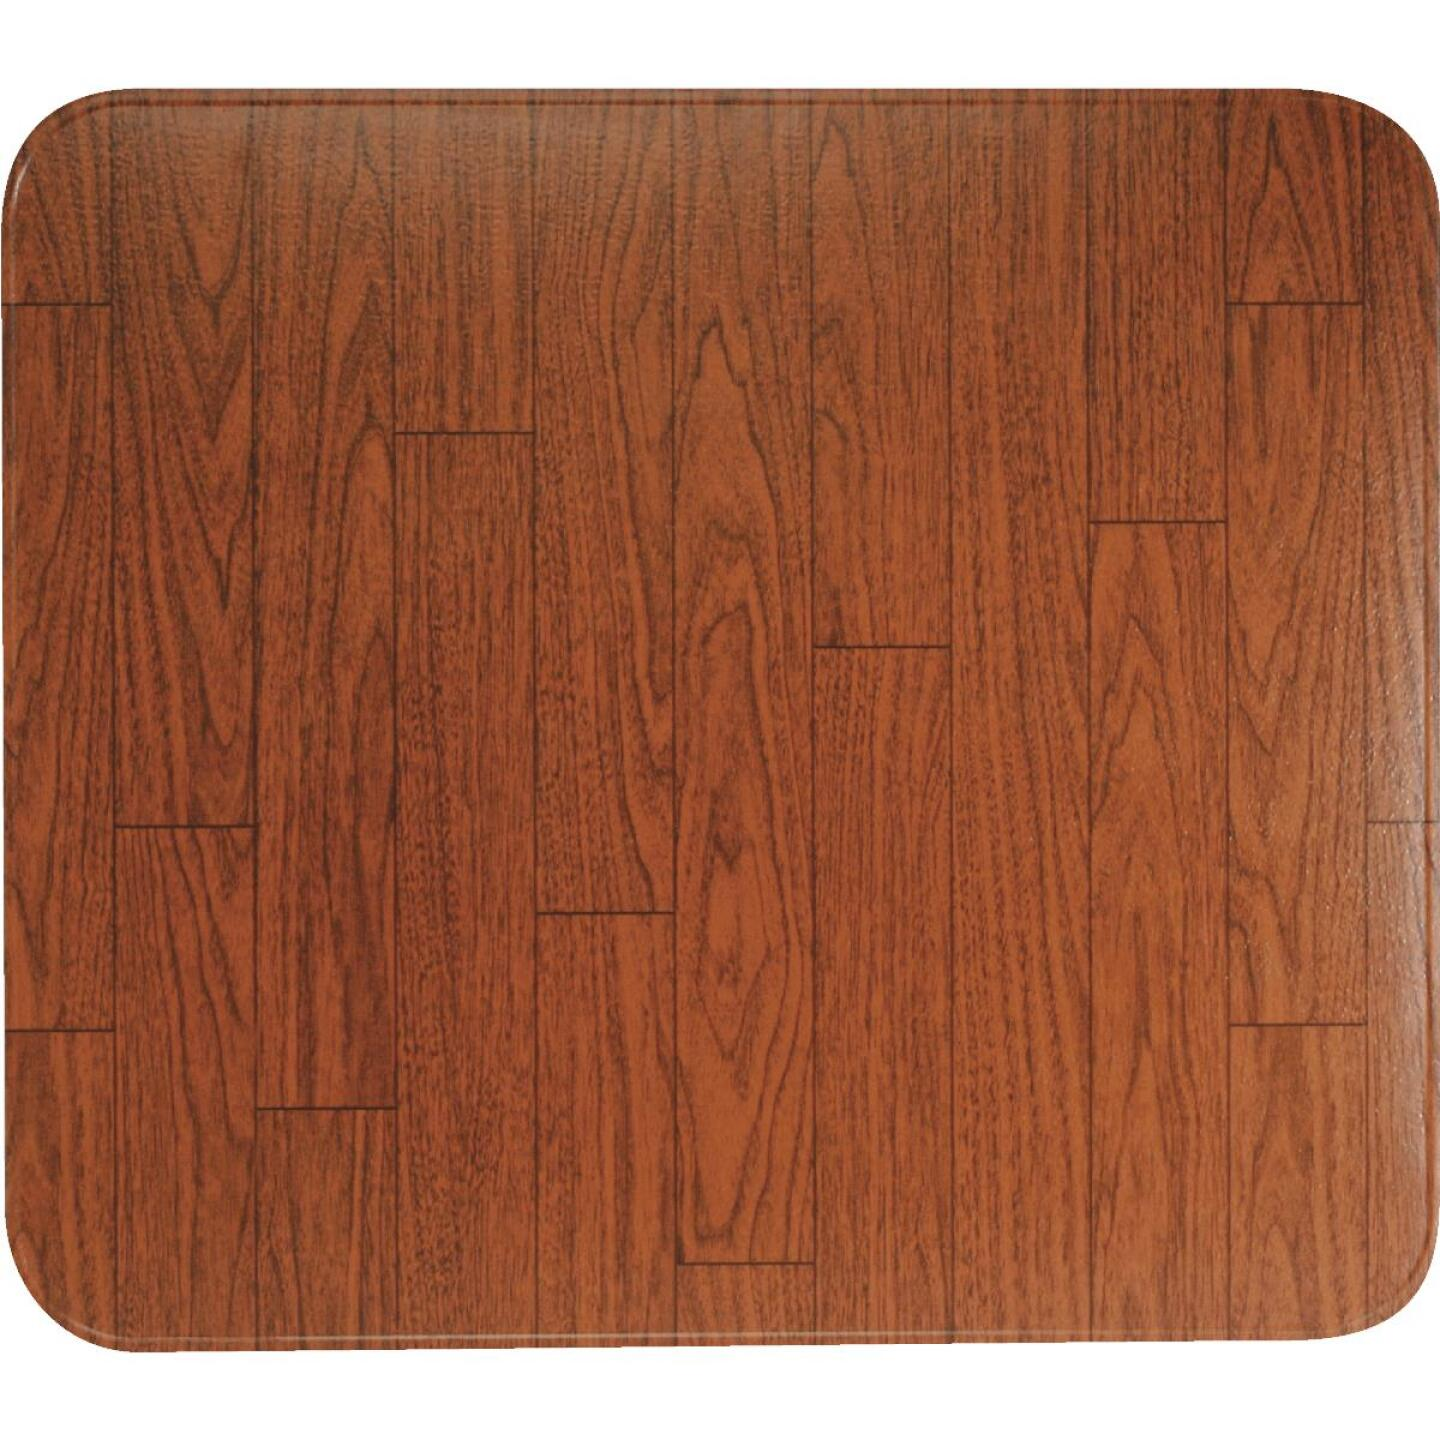 HY-C 36 In. x 52 In. Lined Stove Board Image 1